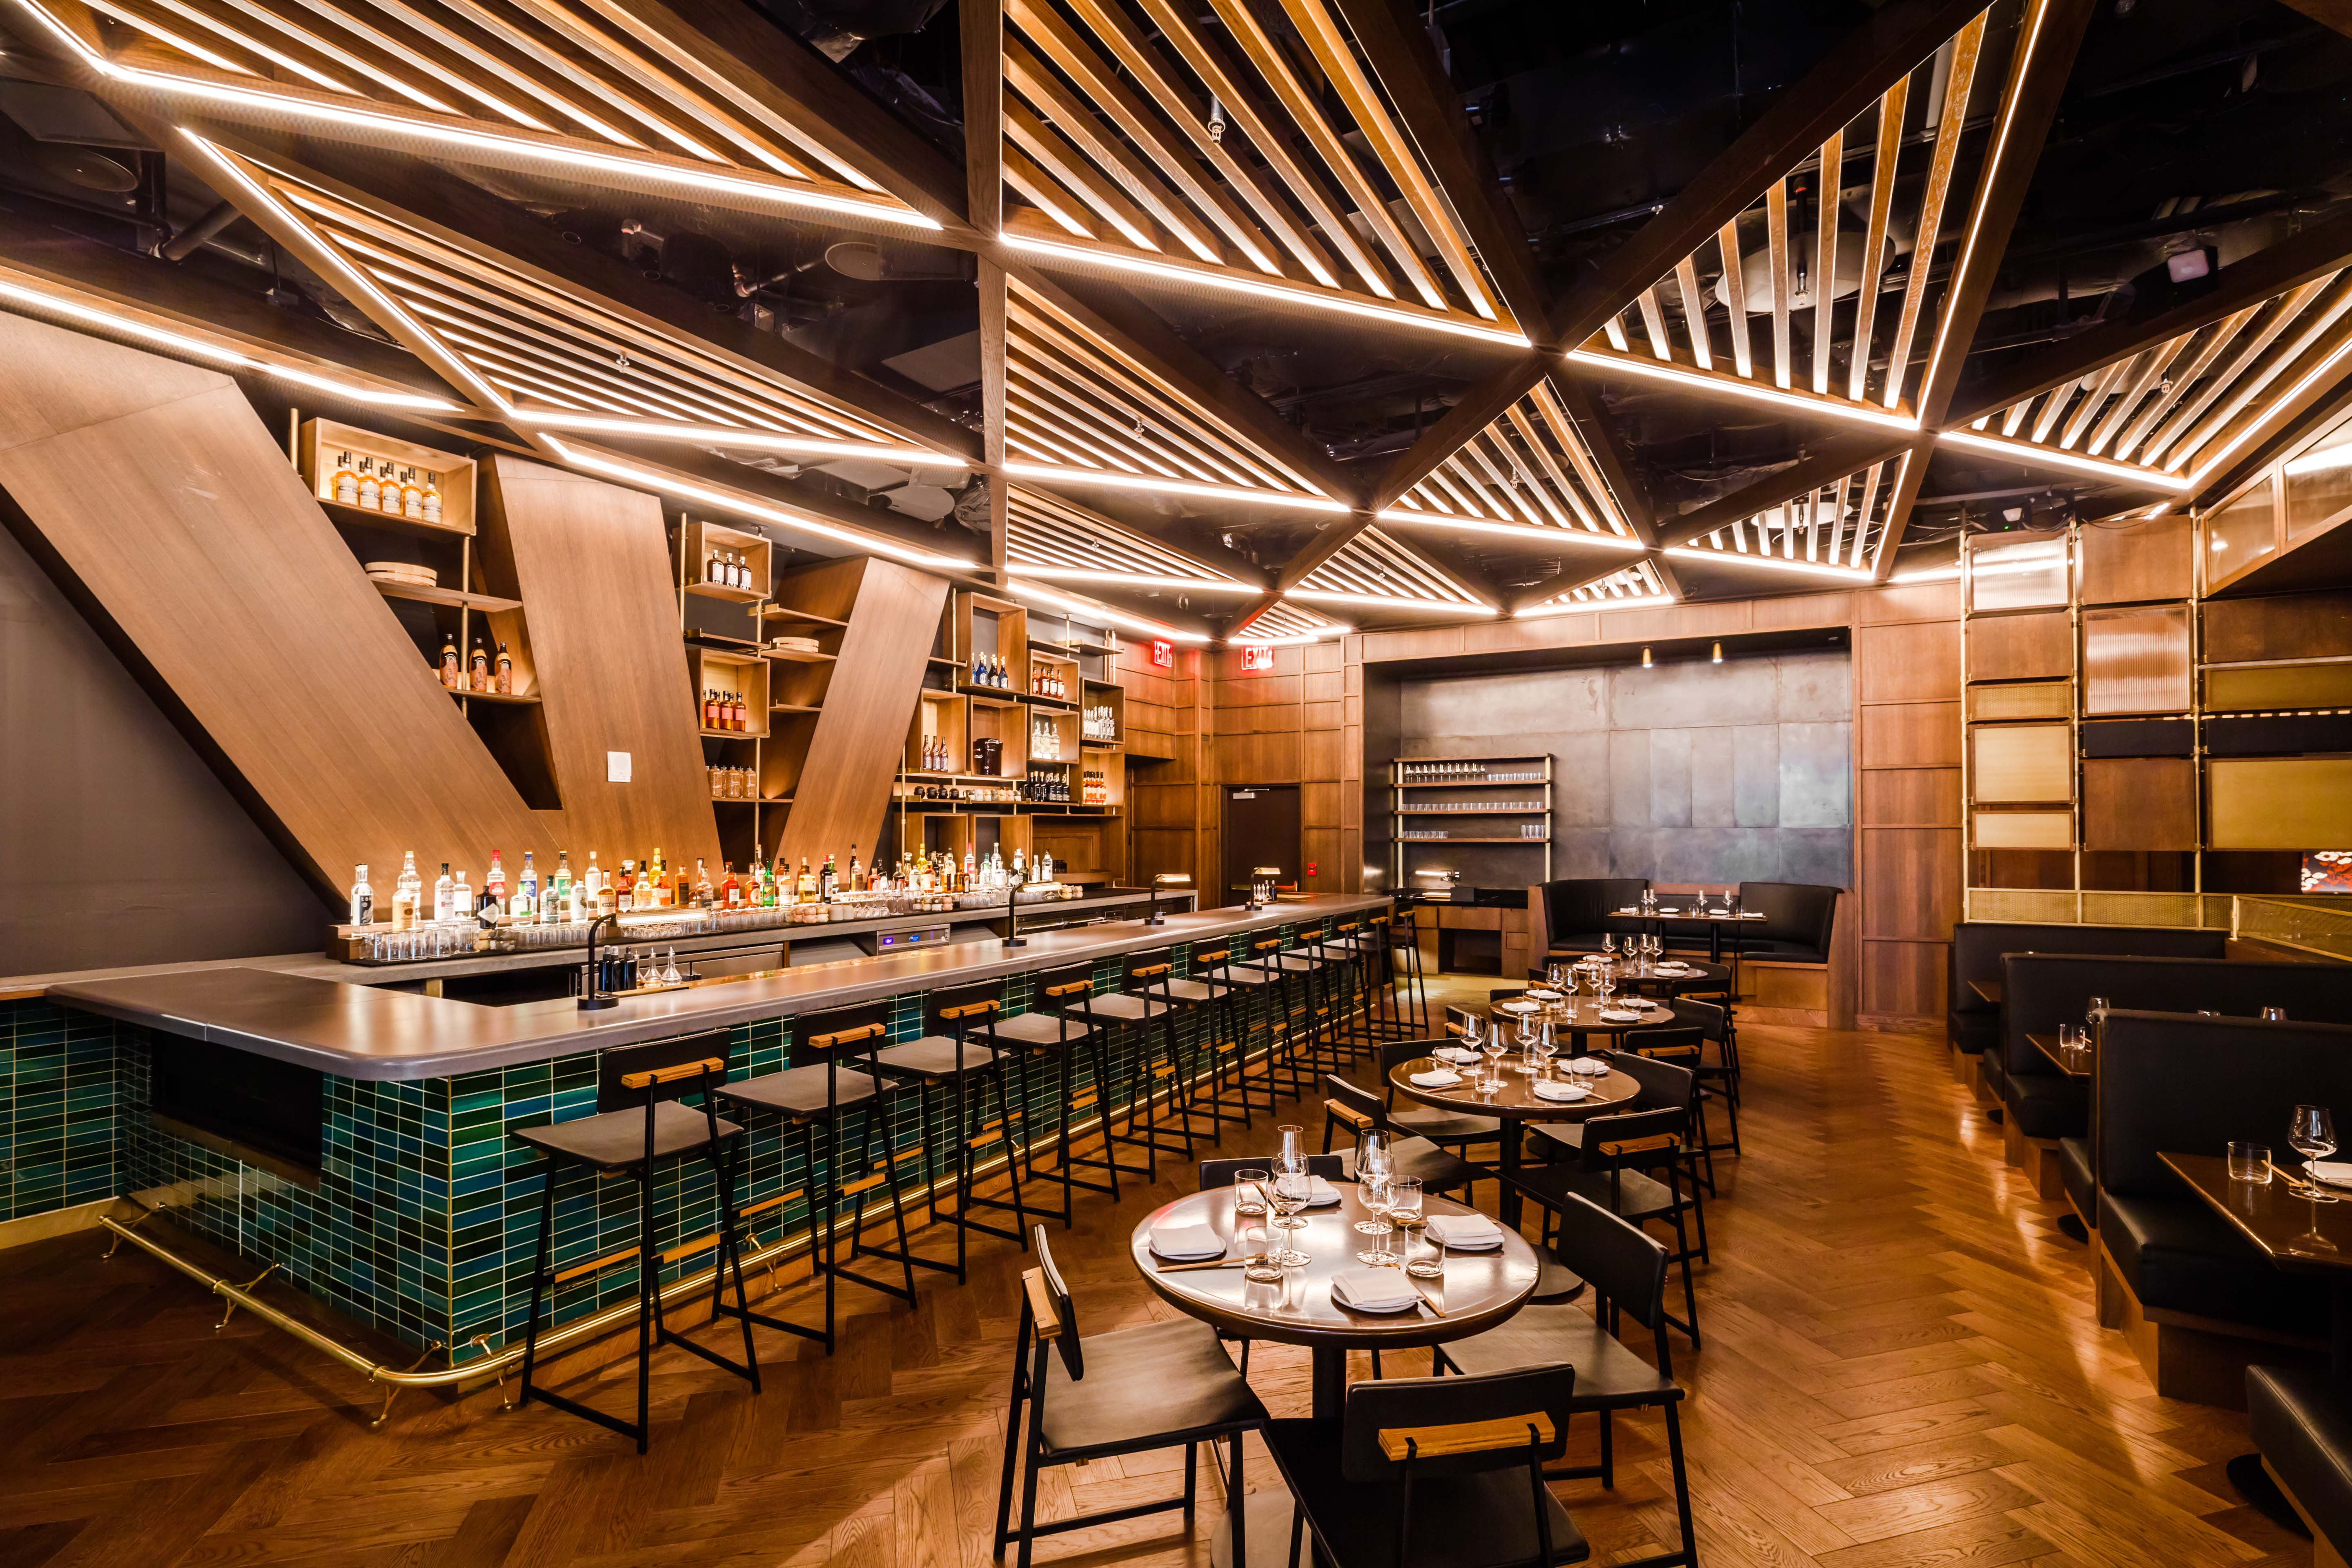 The interior of the Hudson Yards restaurant Kawi with with triangular shaped light panels above a wooden dining room